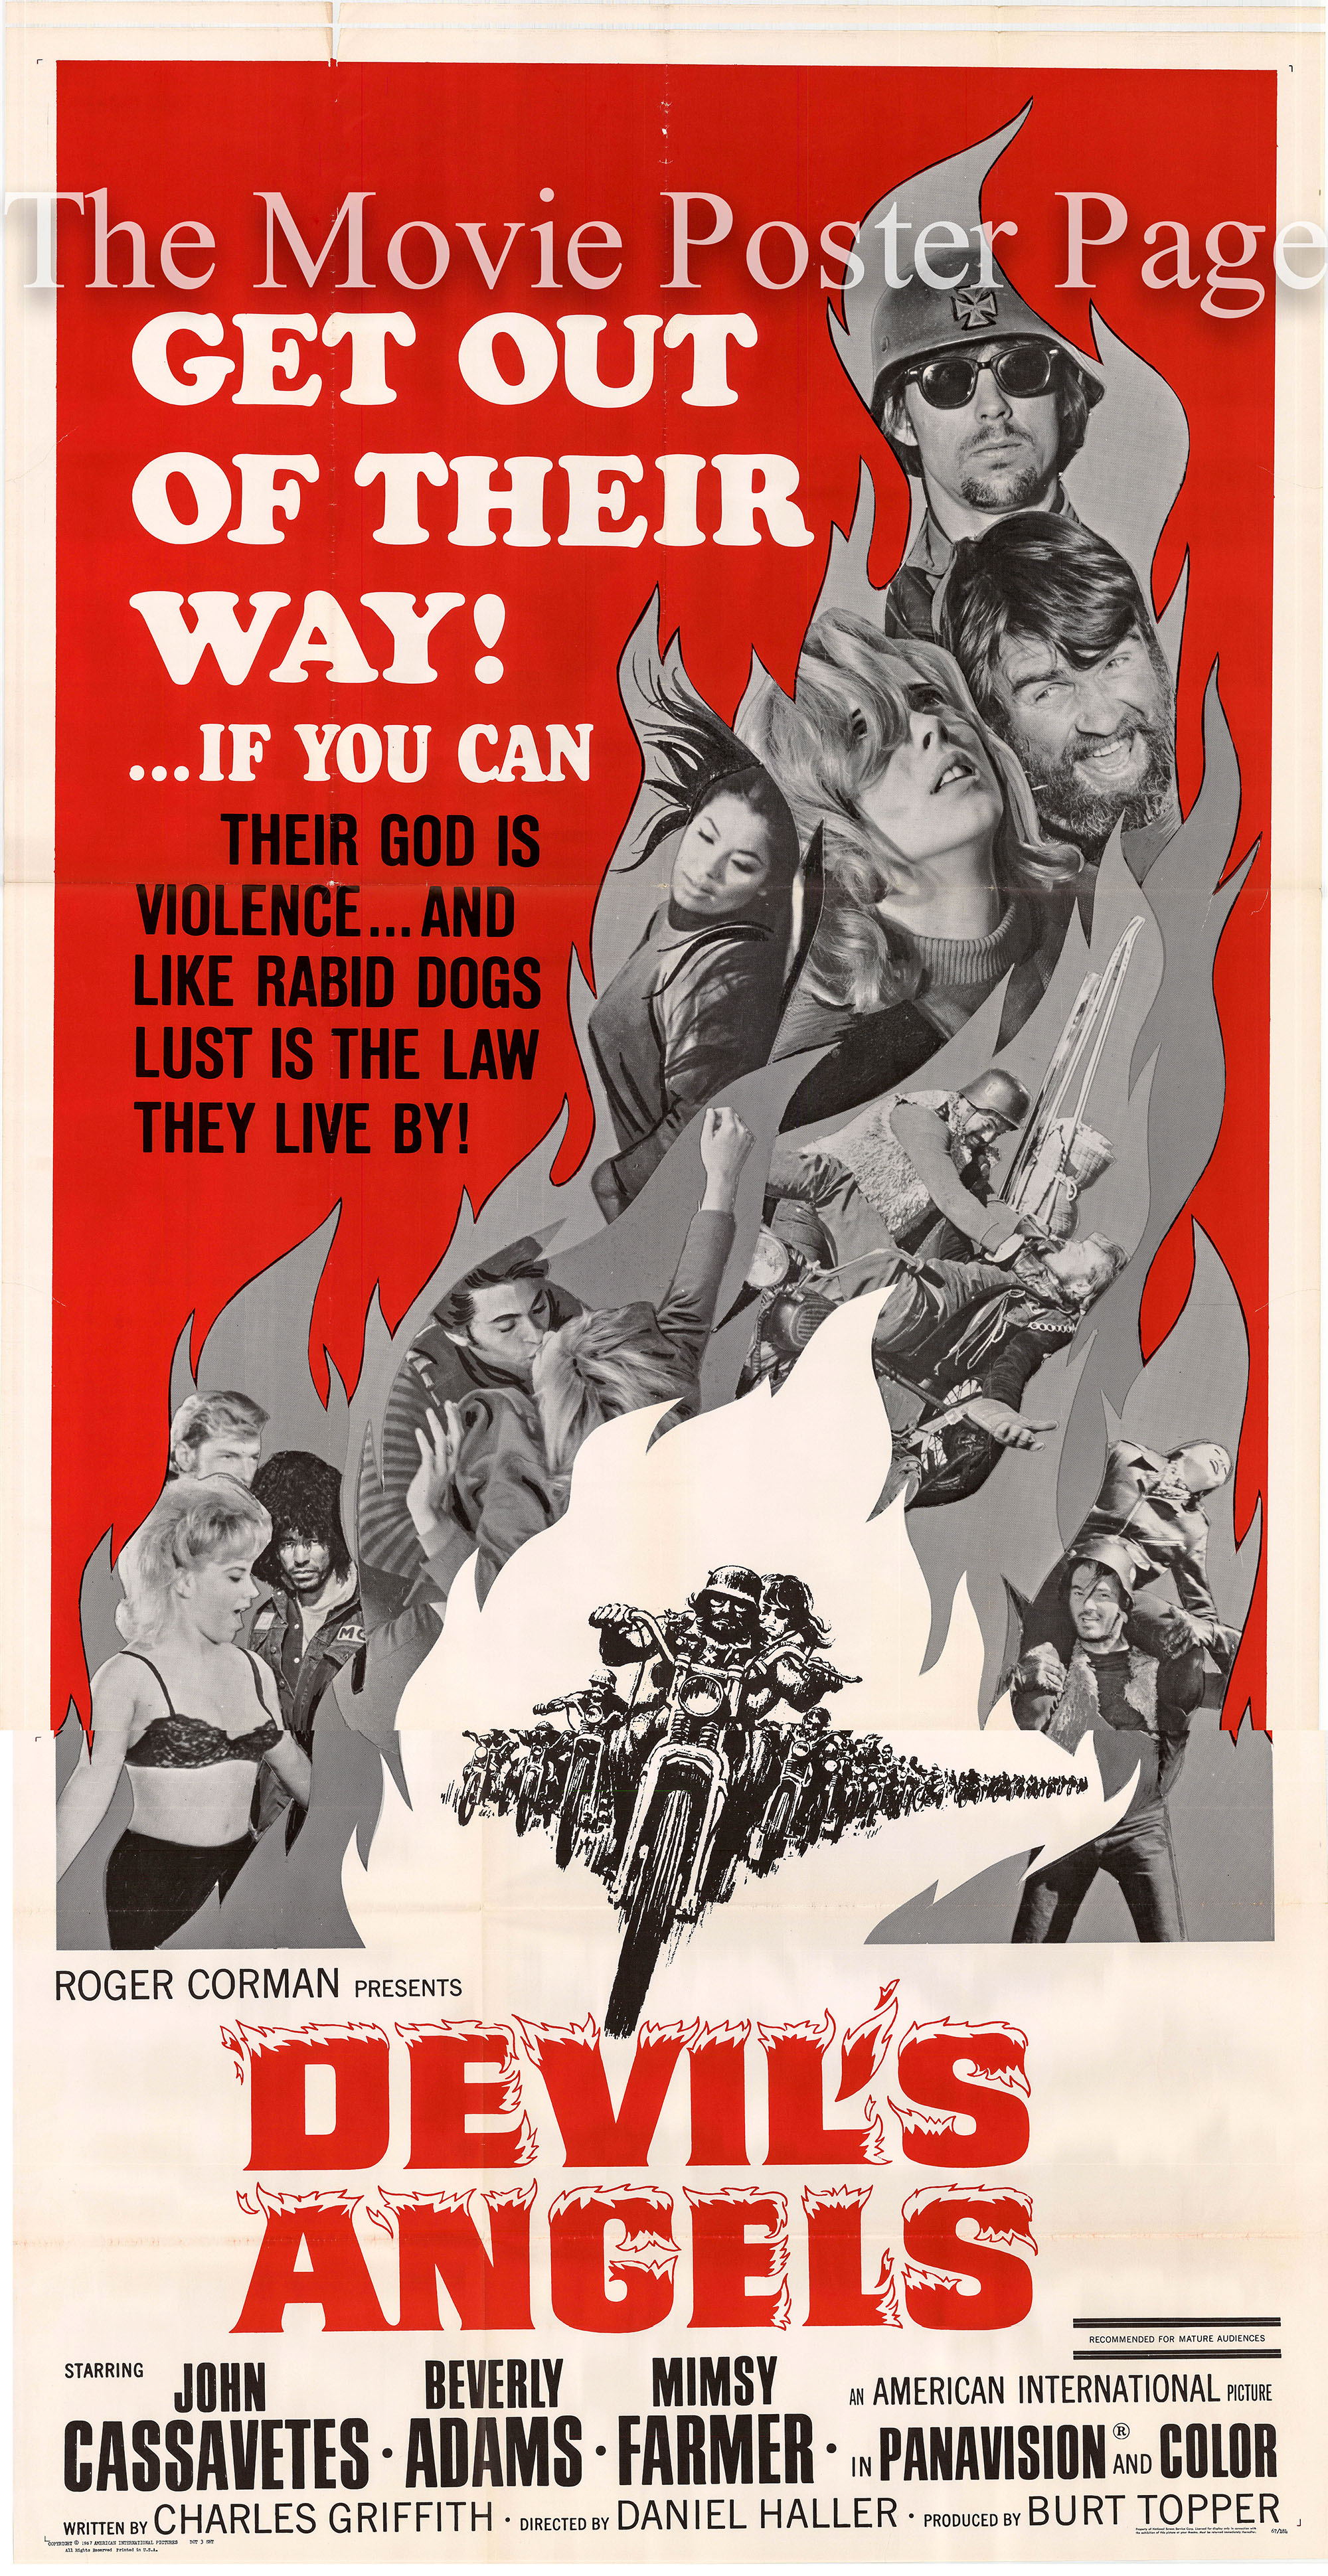 Pictured is a US three-sheet promotional poster for the 1957 Daniel Haller film Devil's Angels starring John Cassavetes as Cody.